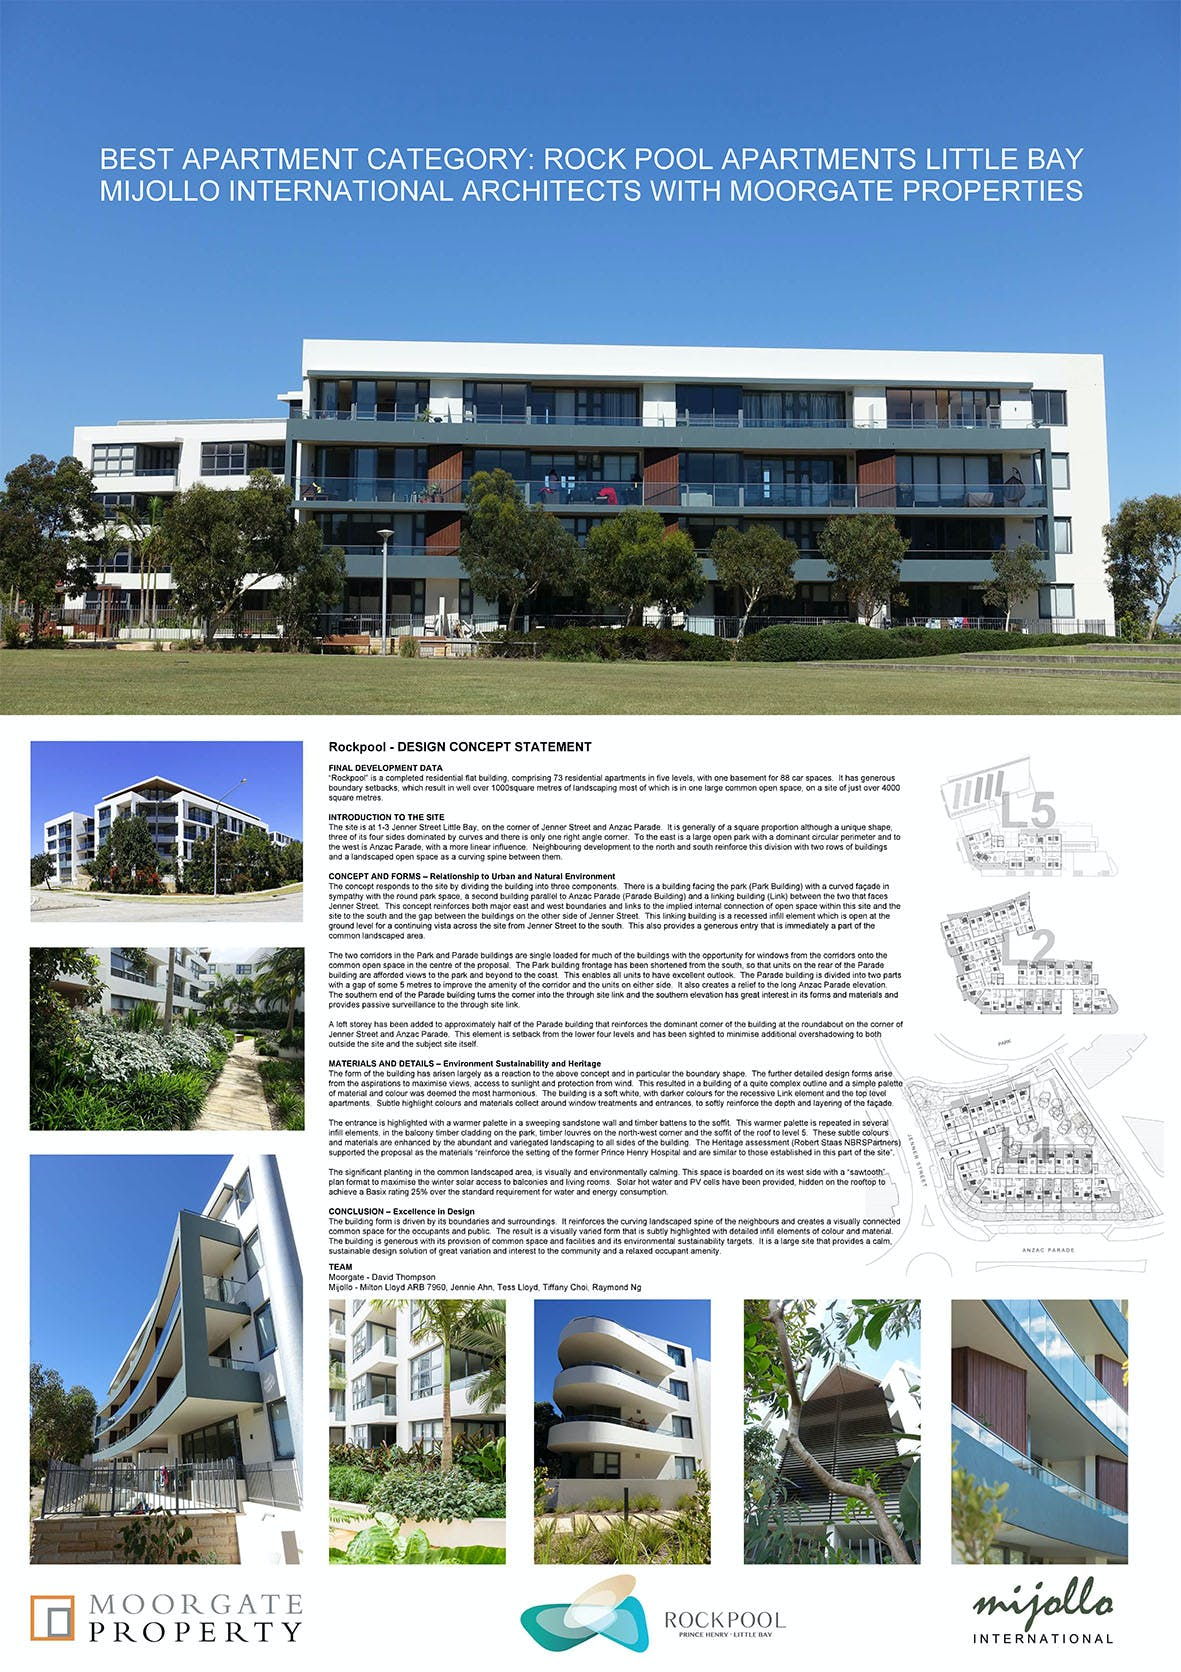 Rockpool Apartments Little Bay